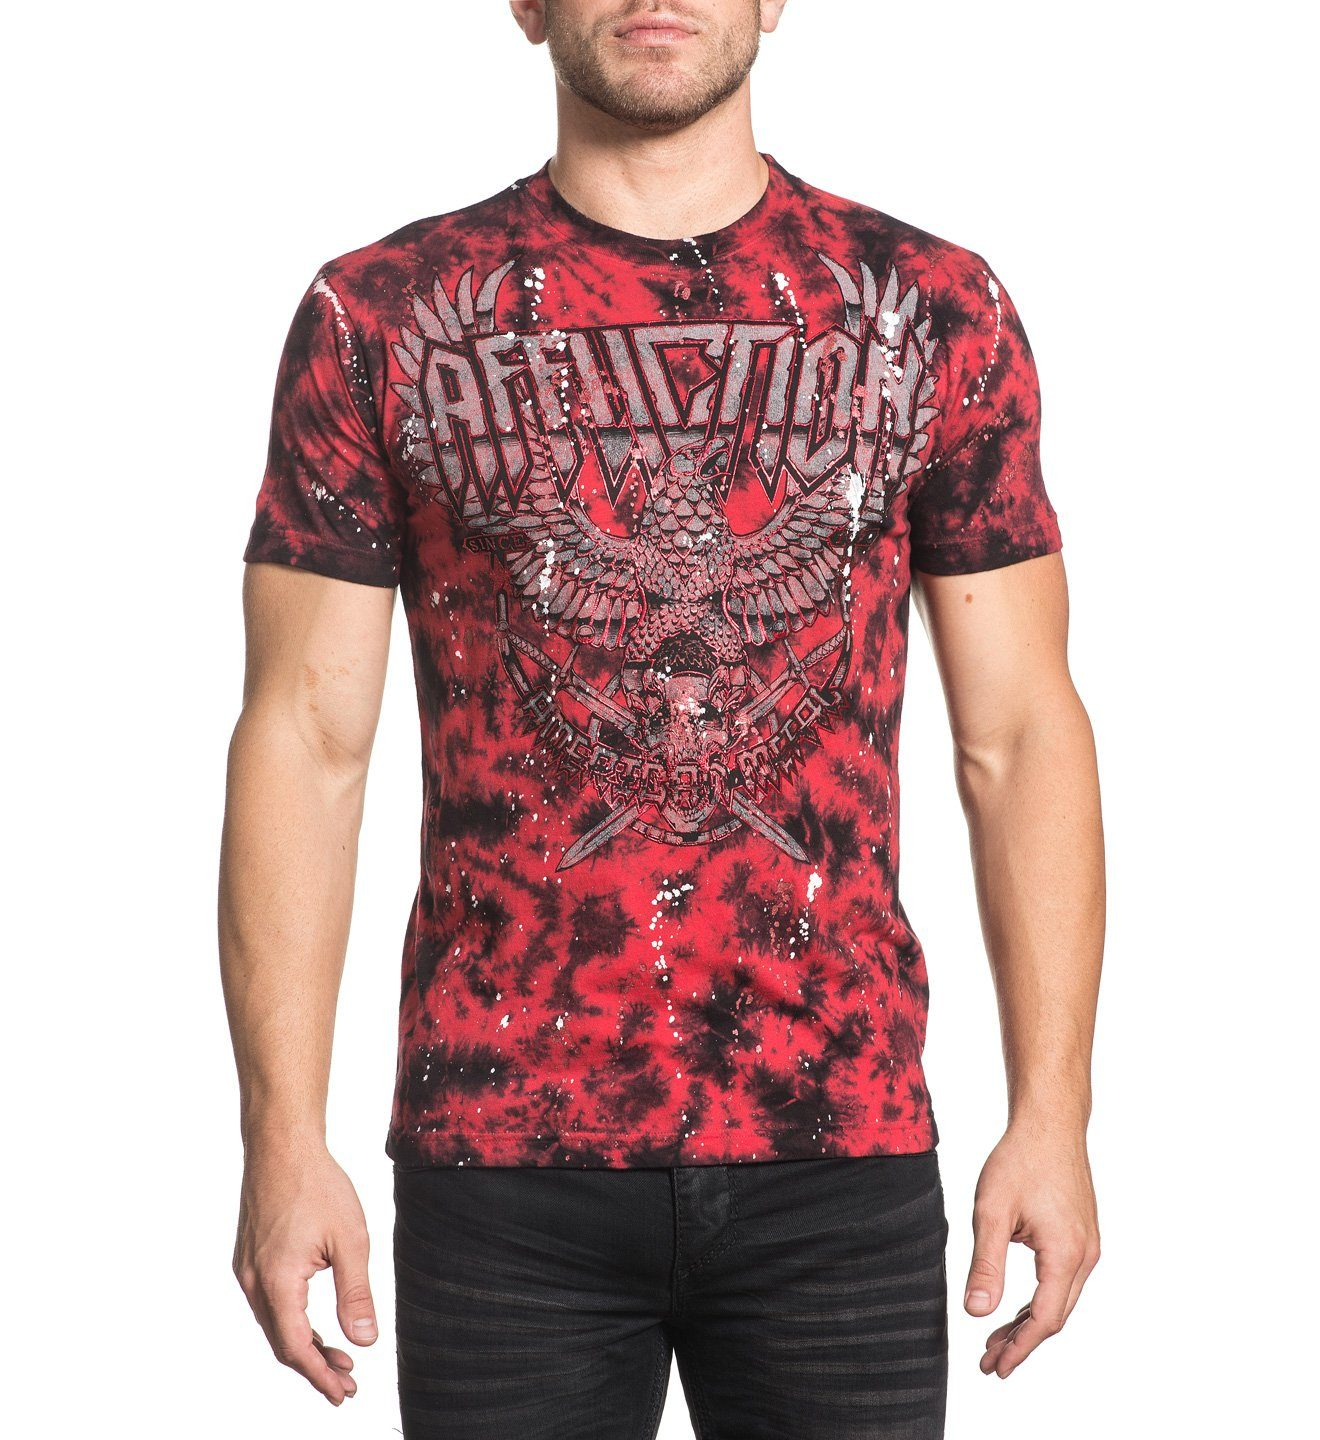 Tour Storm - Mens Short Sleeve Tees - Affliction Clothing